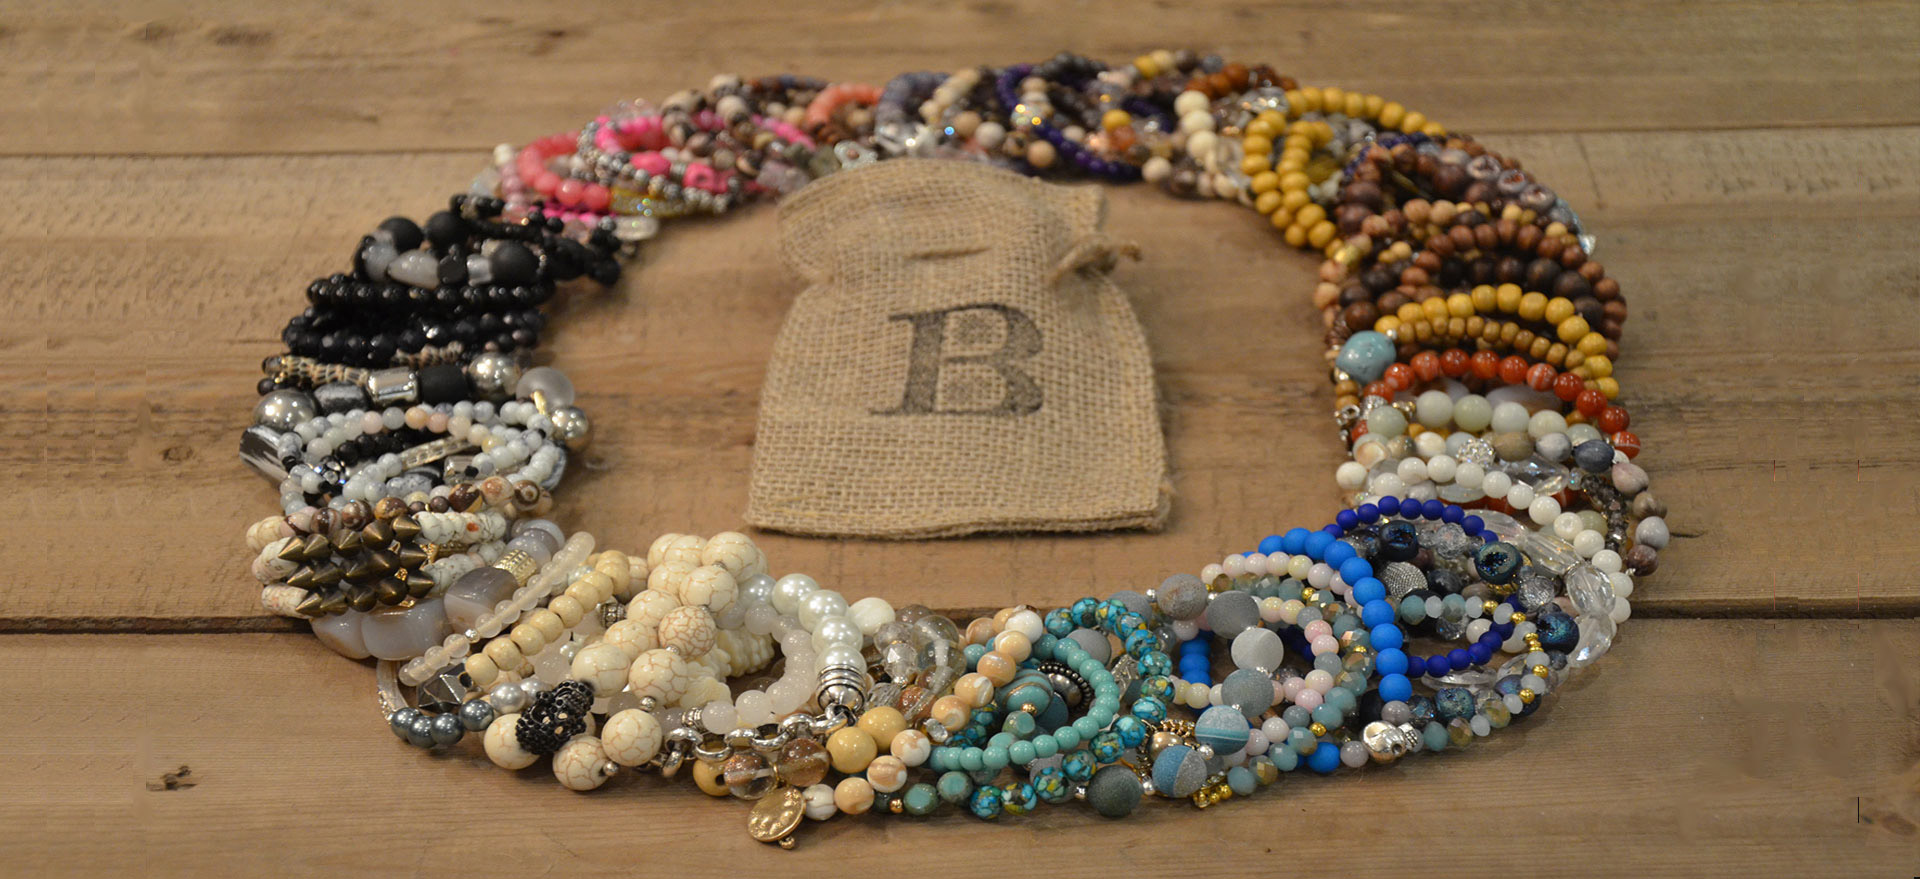 Unique handcrafted jewelry